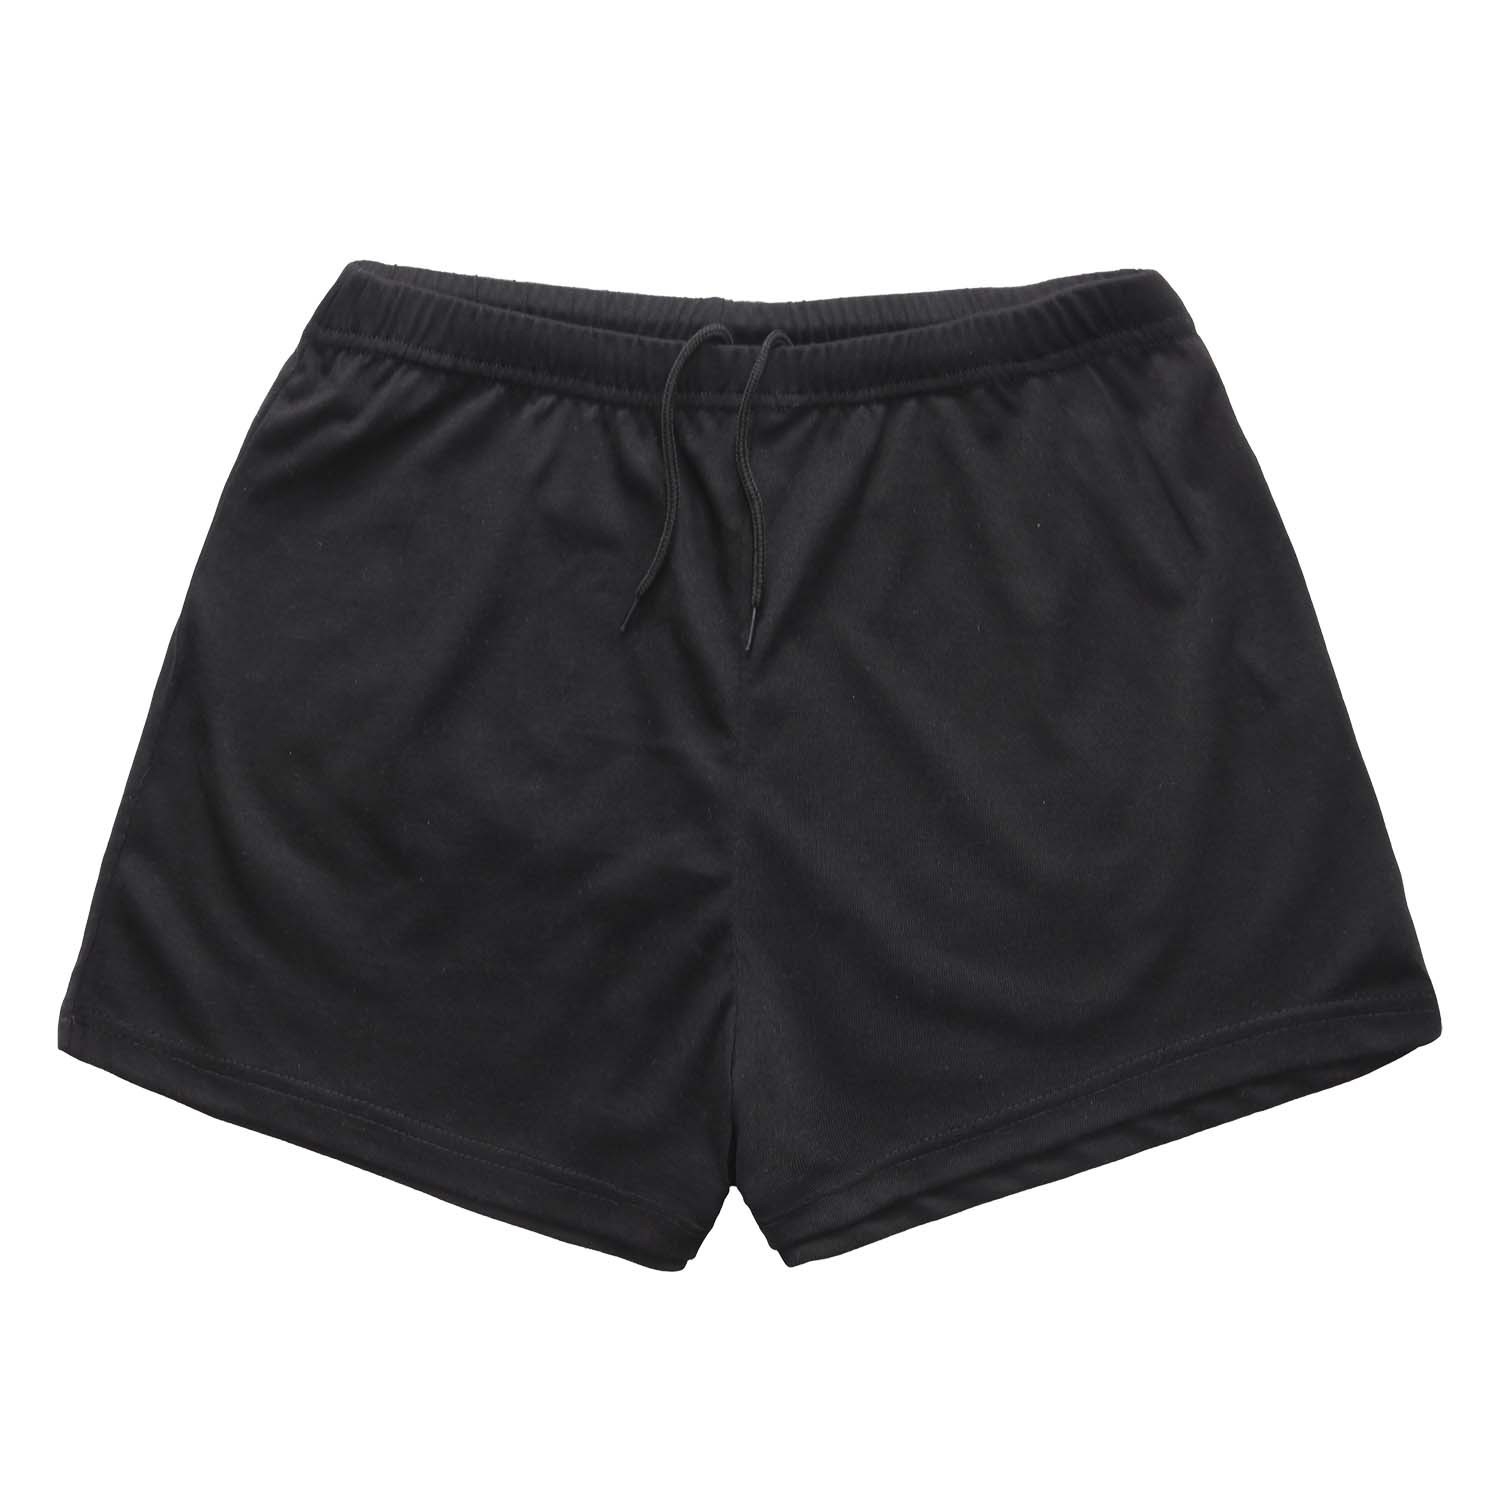 Sports Shorts Men's Quick-Dry Breathable Running Shorts Fitness Elasticity Ultra-Light Solid Color Students Casual Basketball Sh